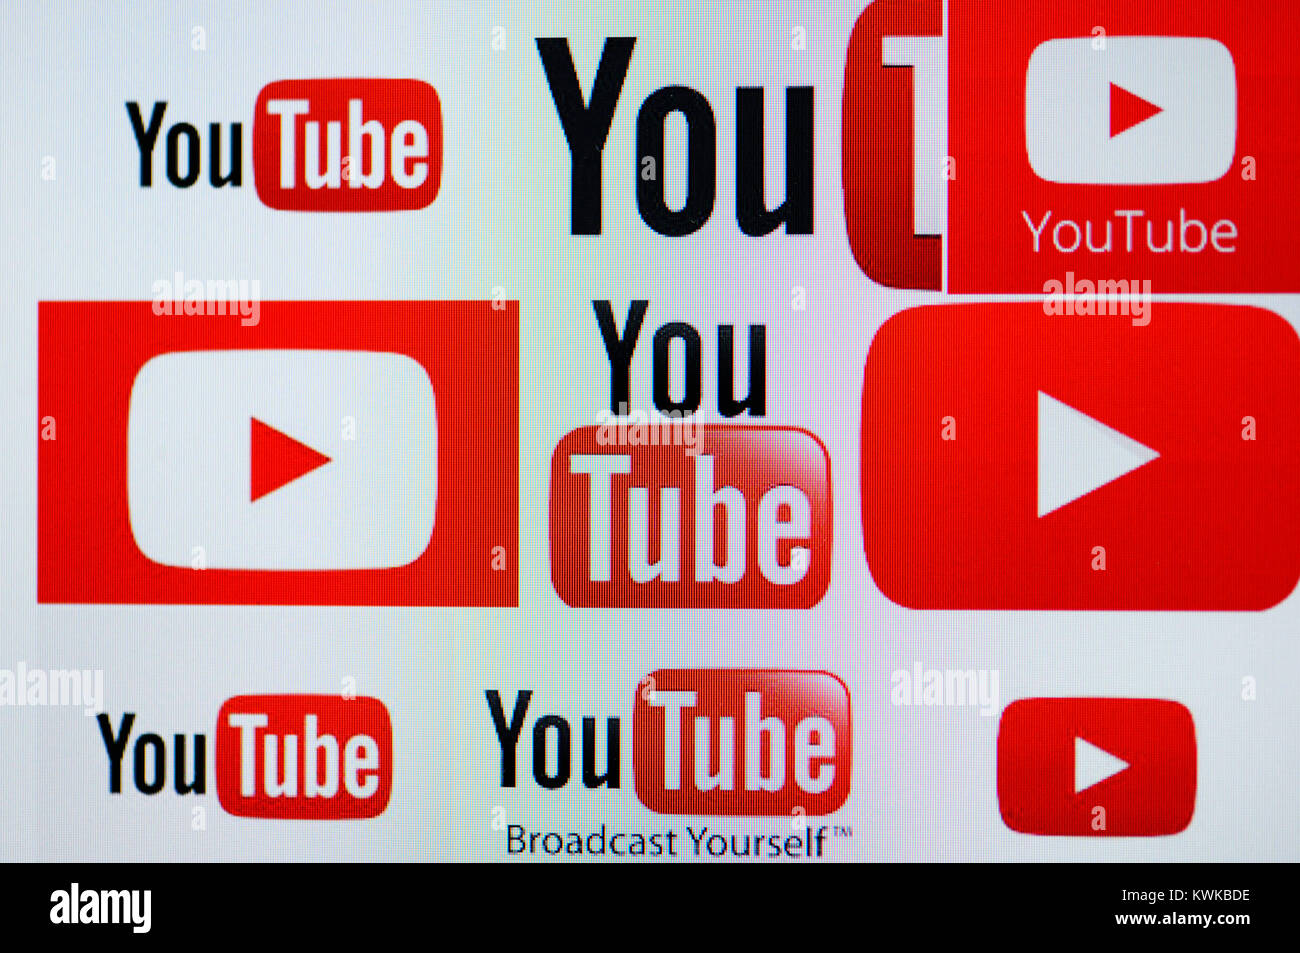 You tube logos on a screen, You tube wants to offer contents liable for costs, You Tube-Logos auf einem Bildschirm, - Stock Image